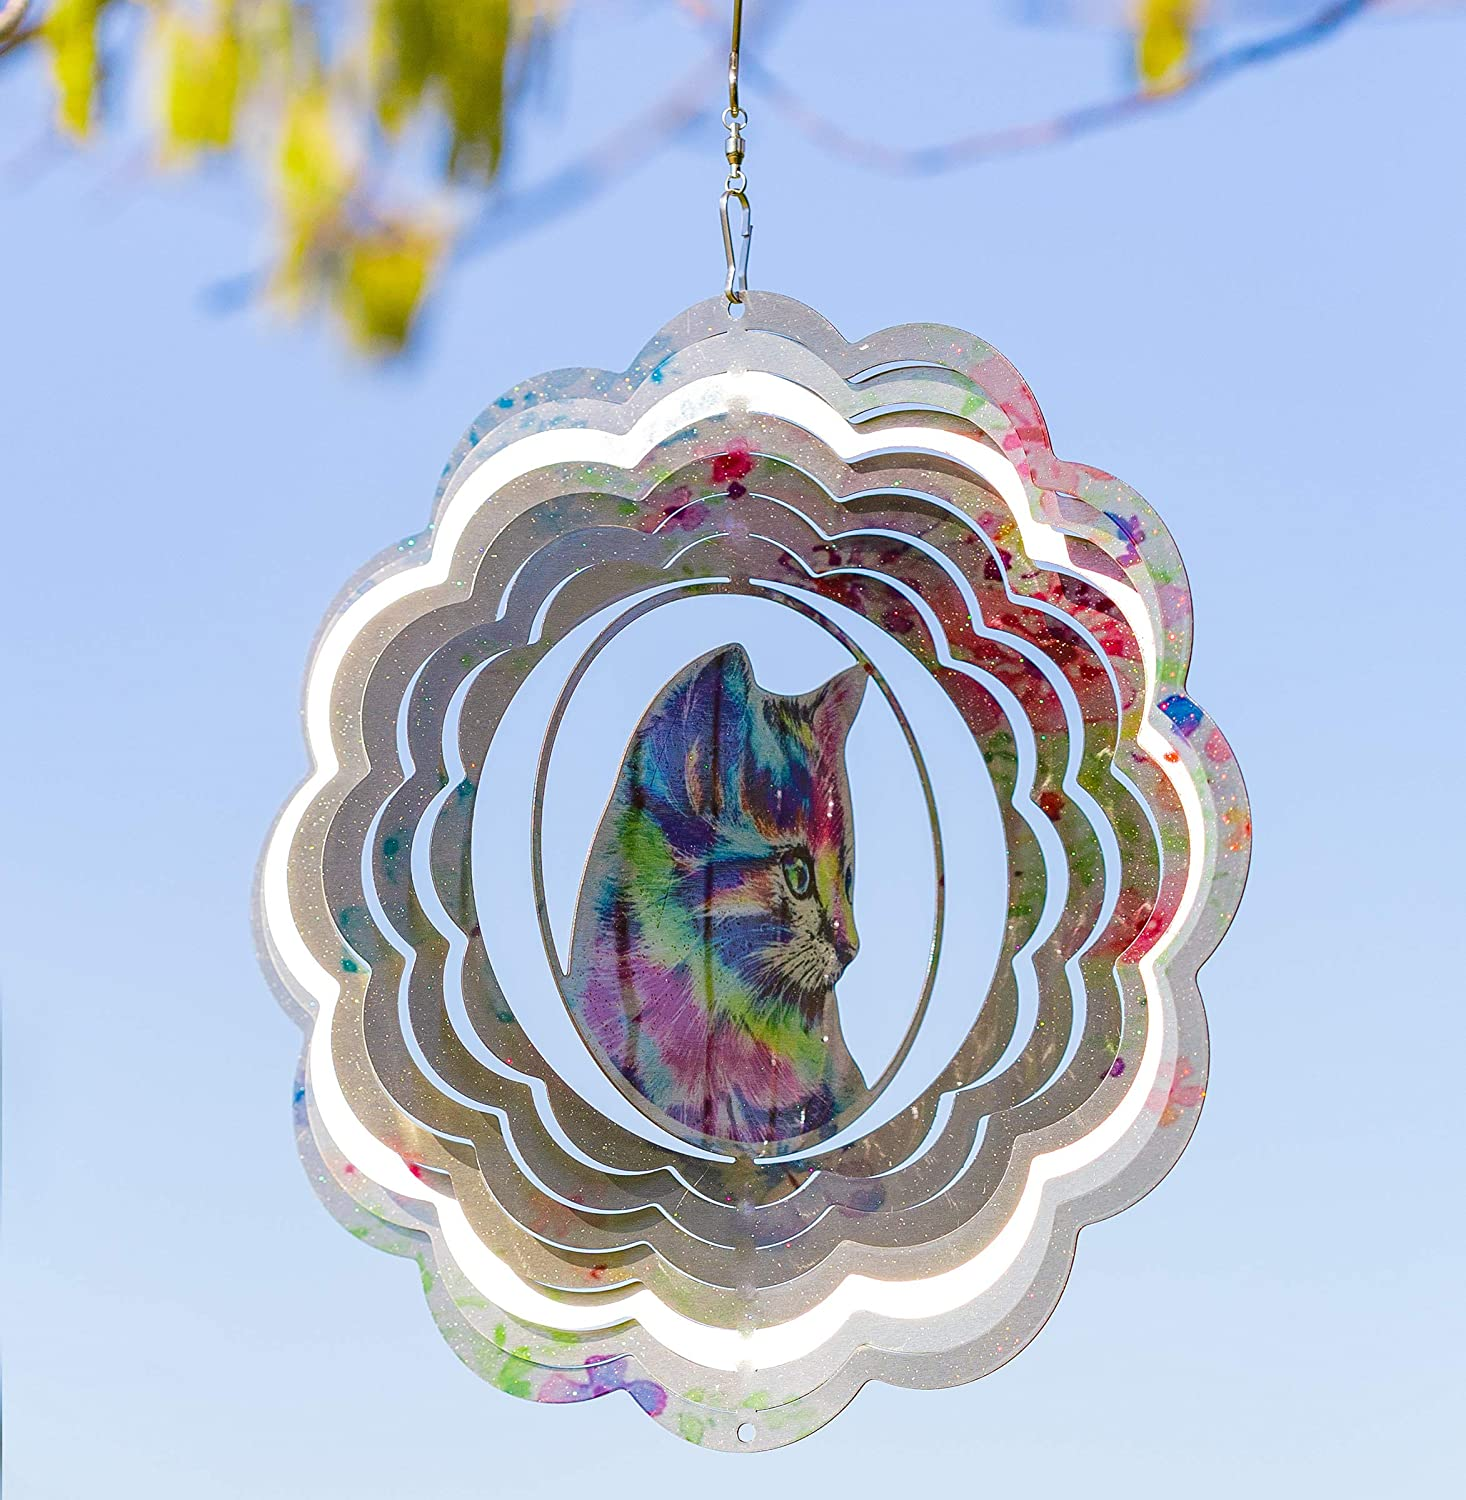 VP Home Kinetic 3D Metal Outdoor Garden Decor Wind Spinner (Colorful Cat)